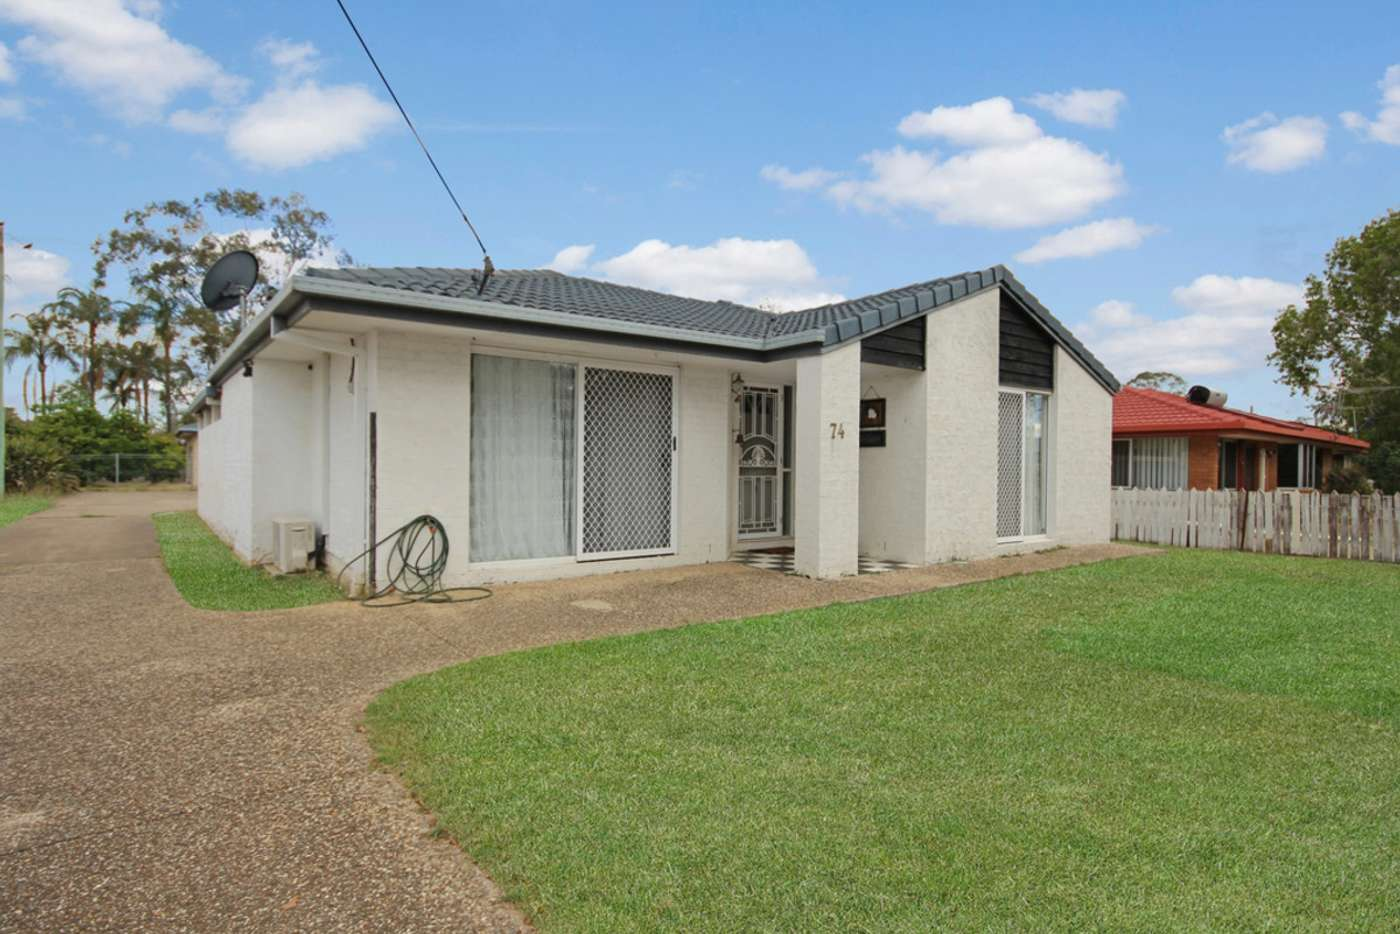 Main view of Homely house listing, 74 Collins Street, Brassall QLD 4305